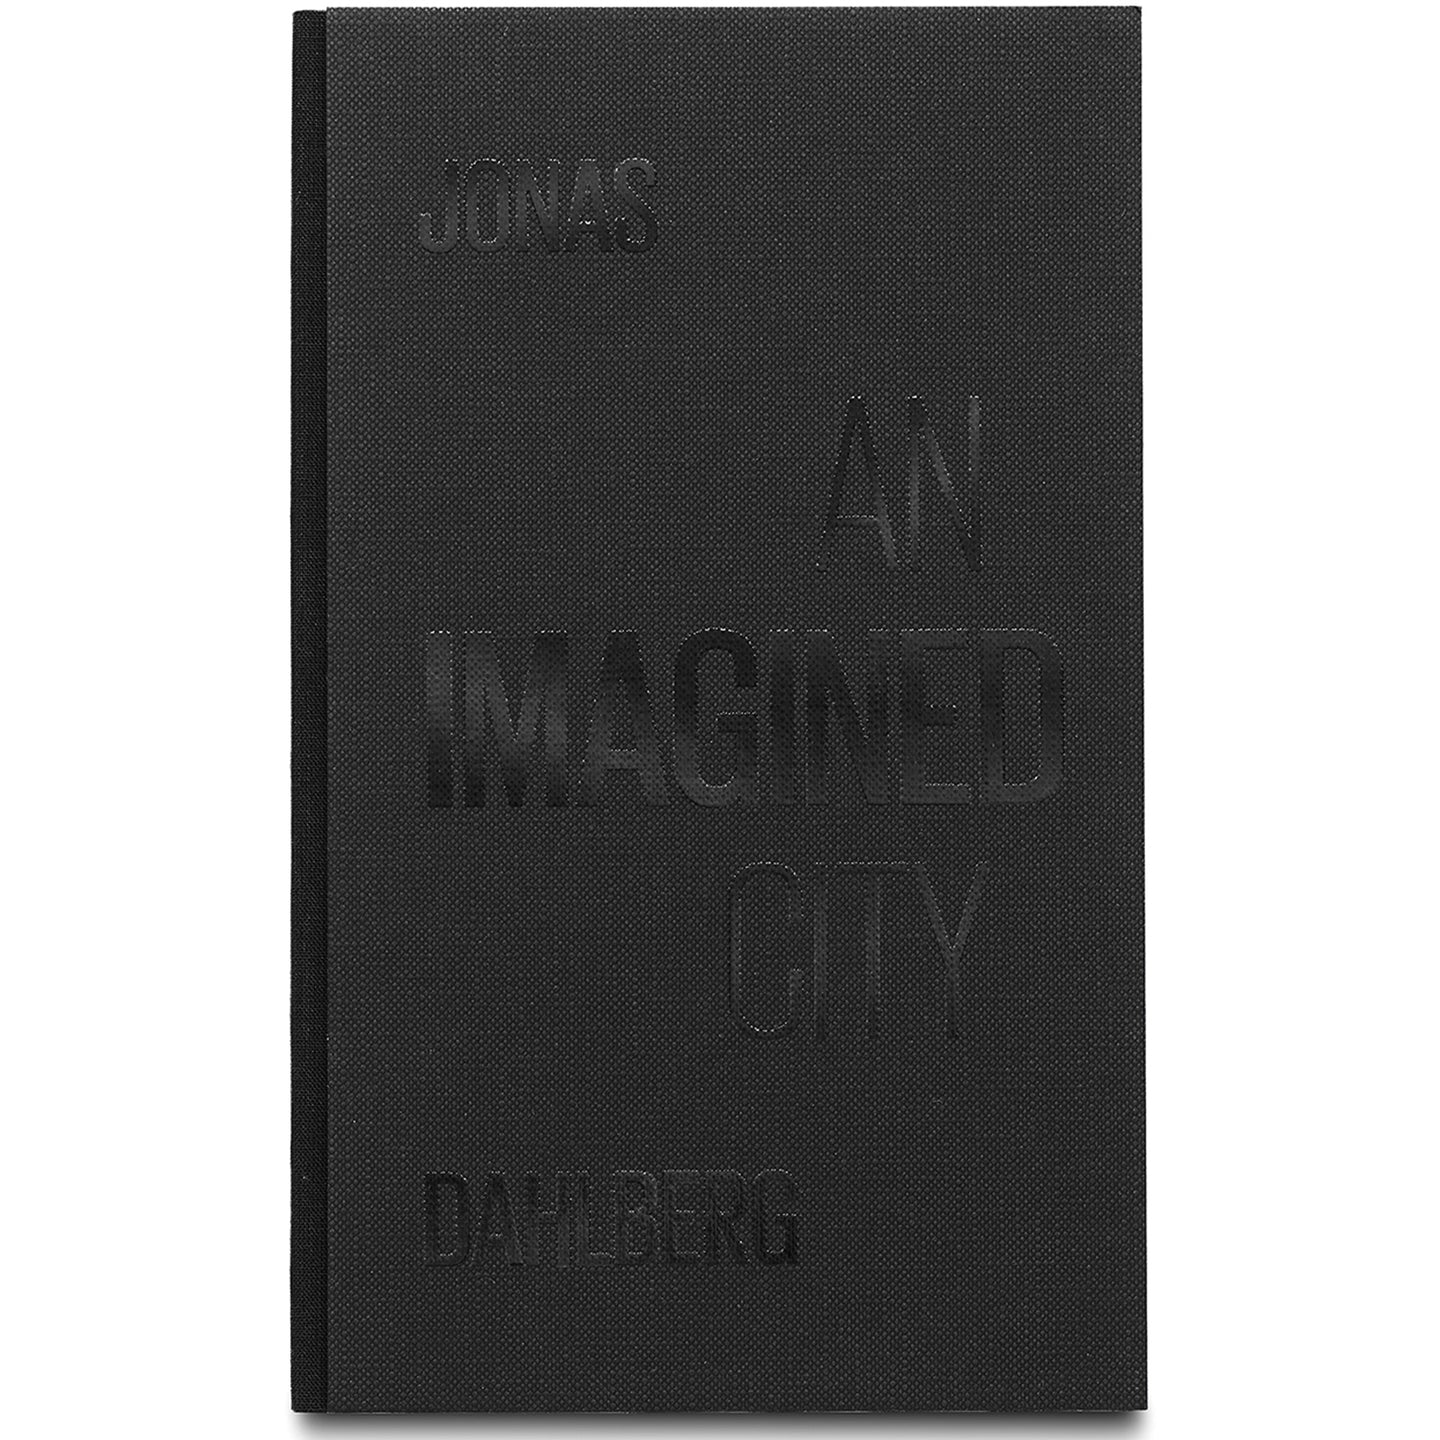 JONAS DAHLBERG: AN IMAGINED CITY